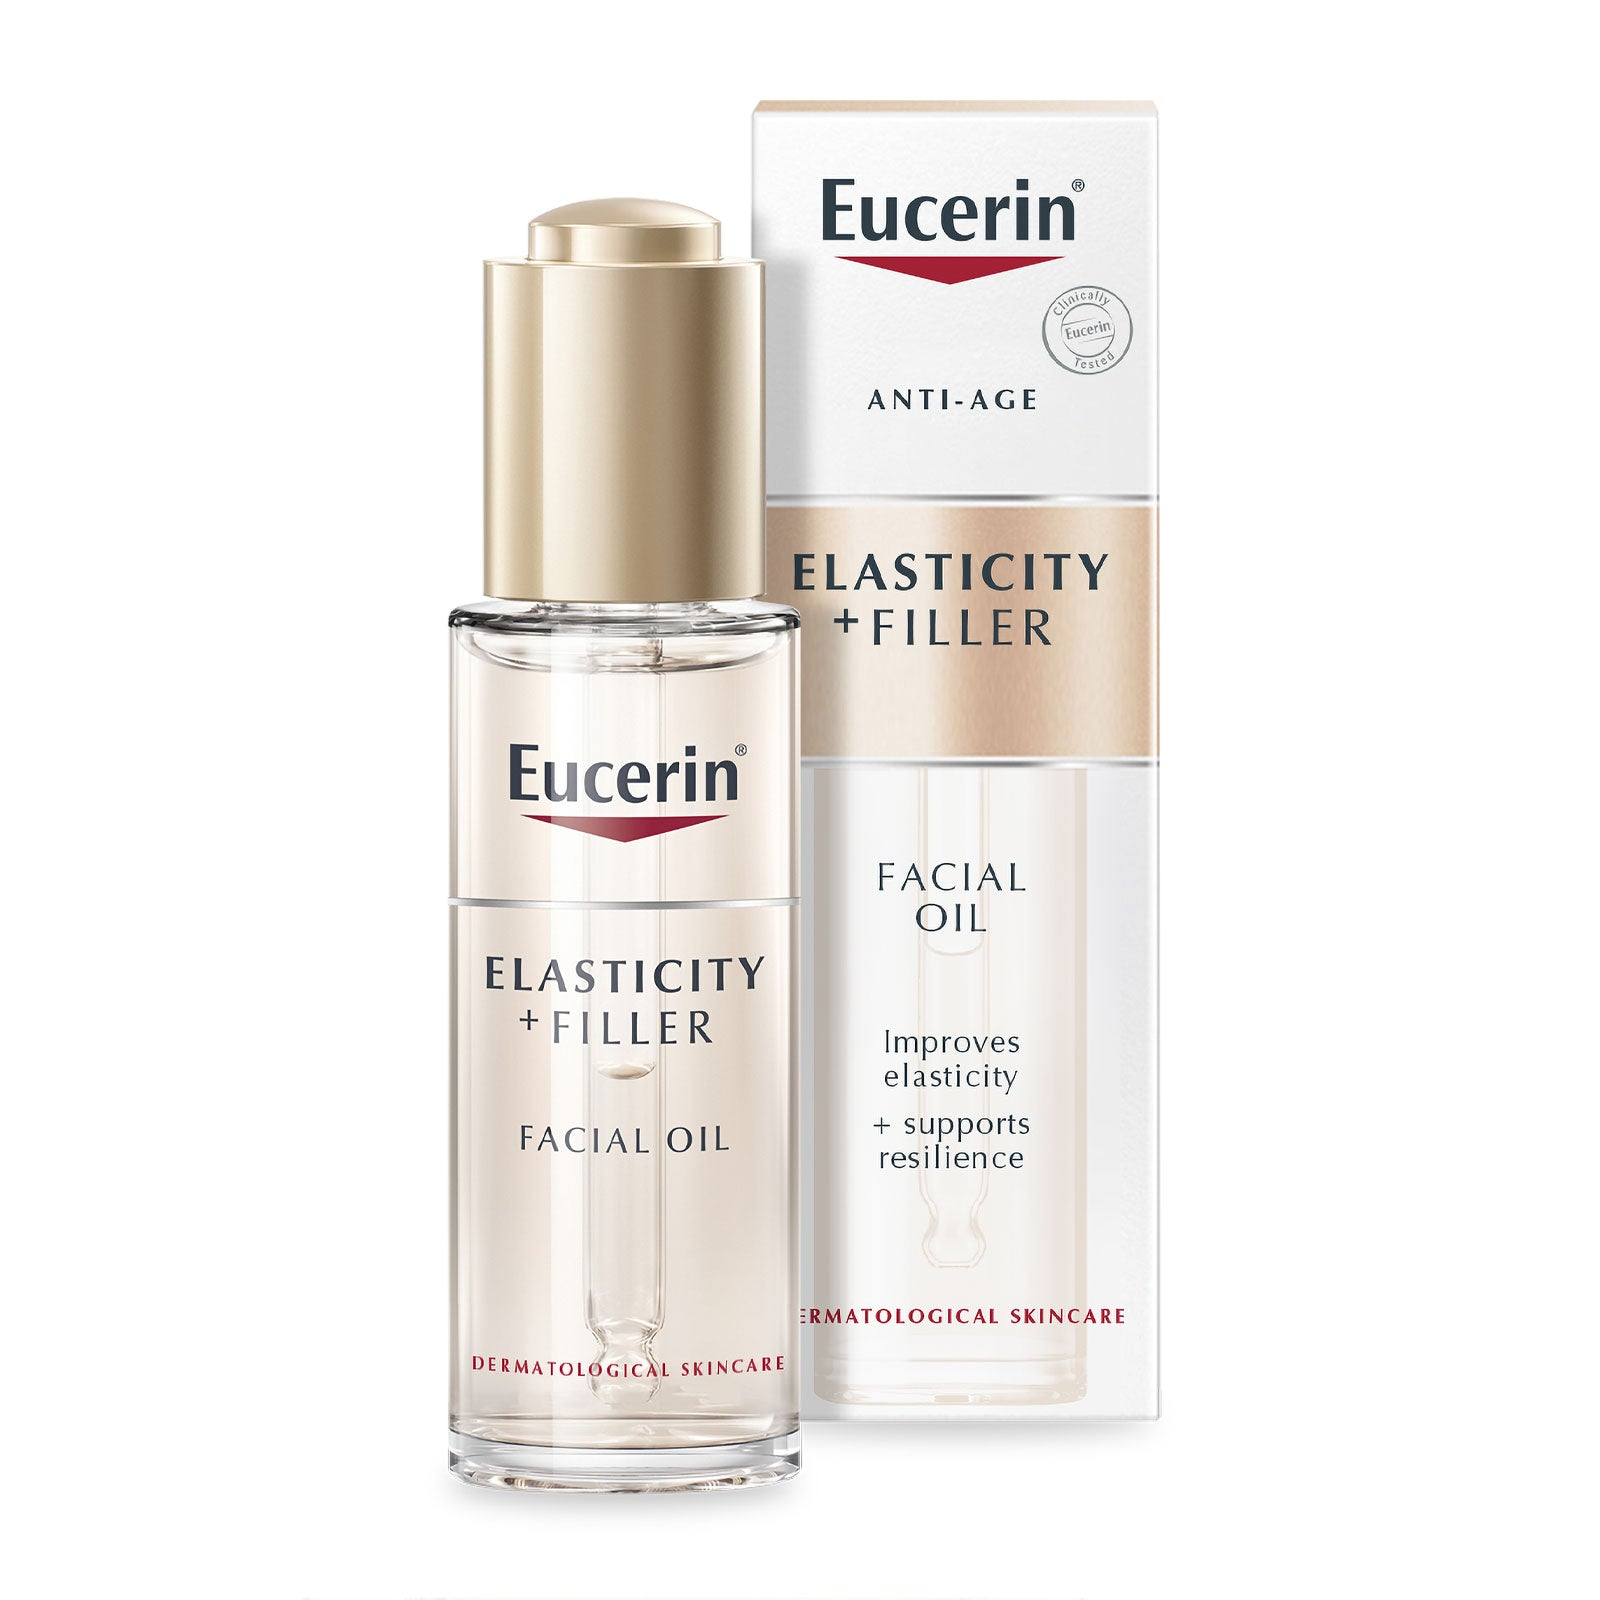 Eucerin Elasticity + Filler Facial Oil 50ml